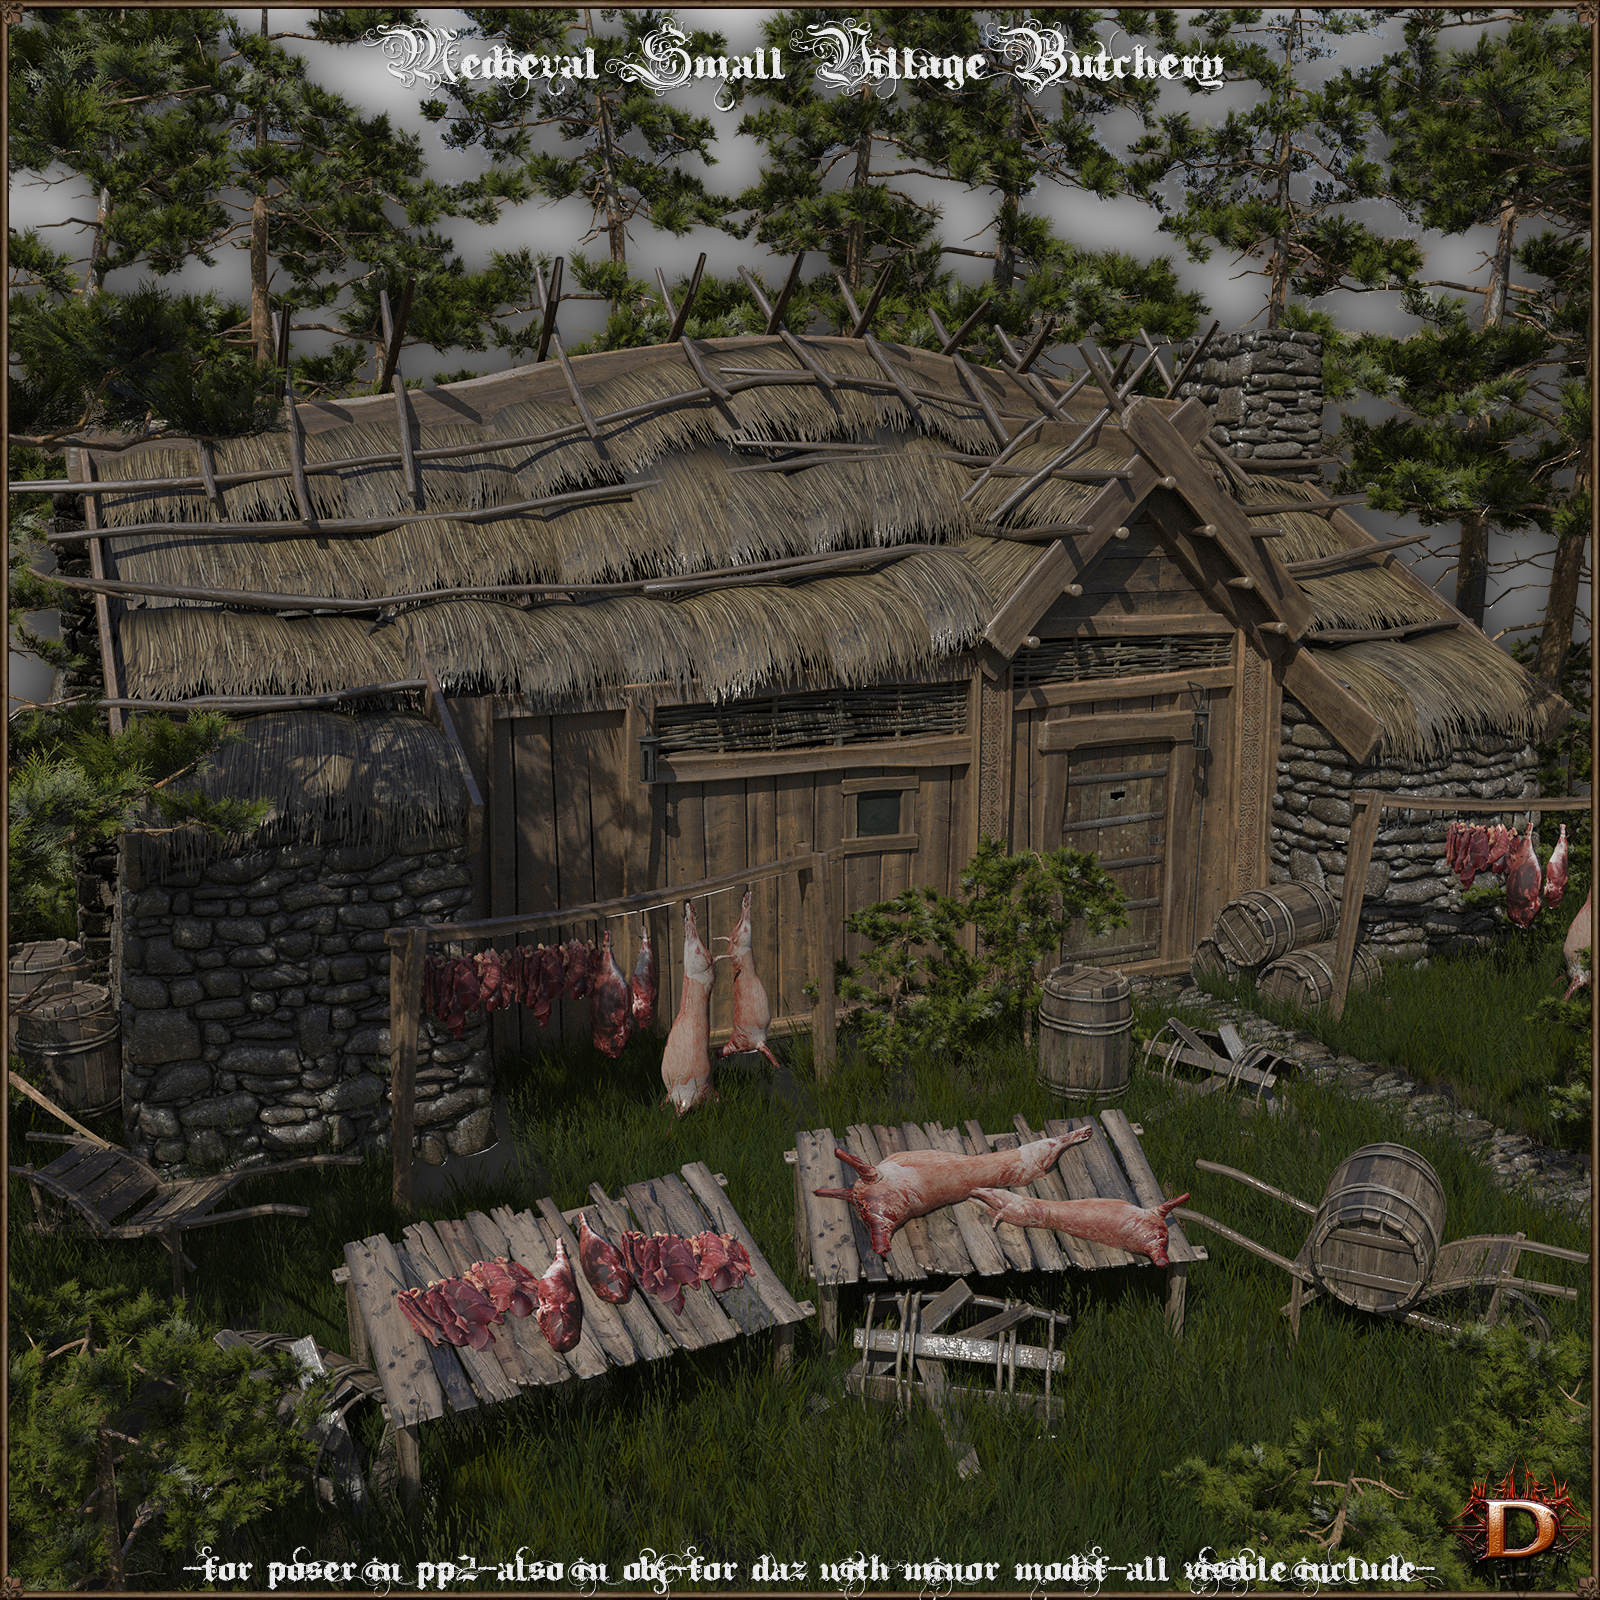 Medieval Small Village Butchery